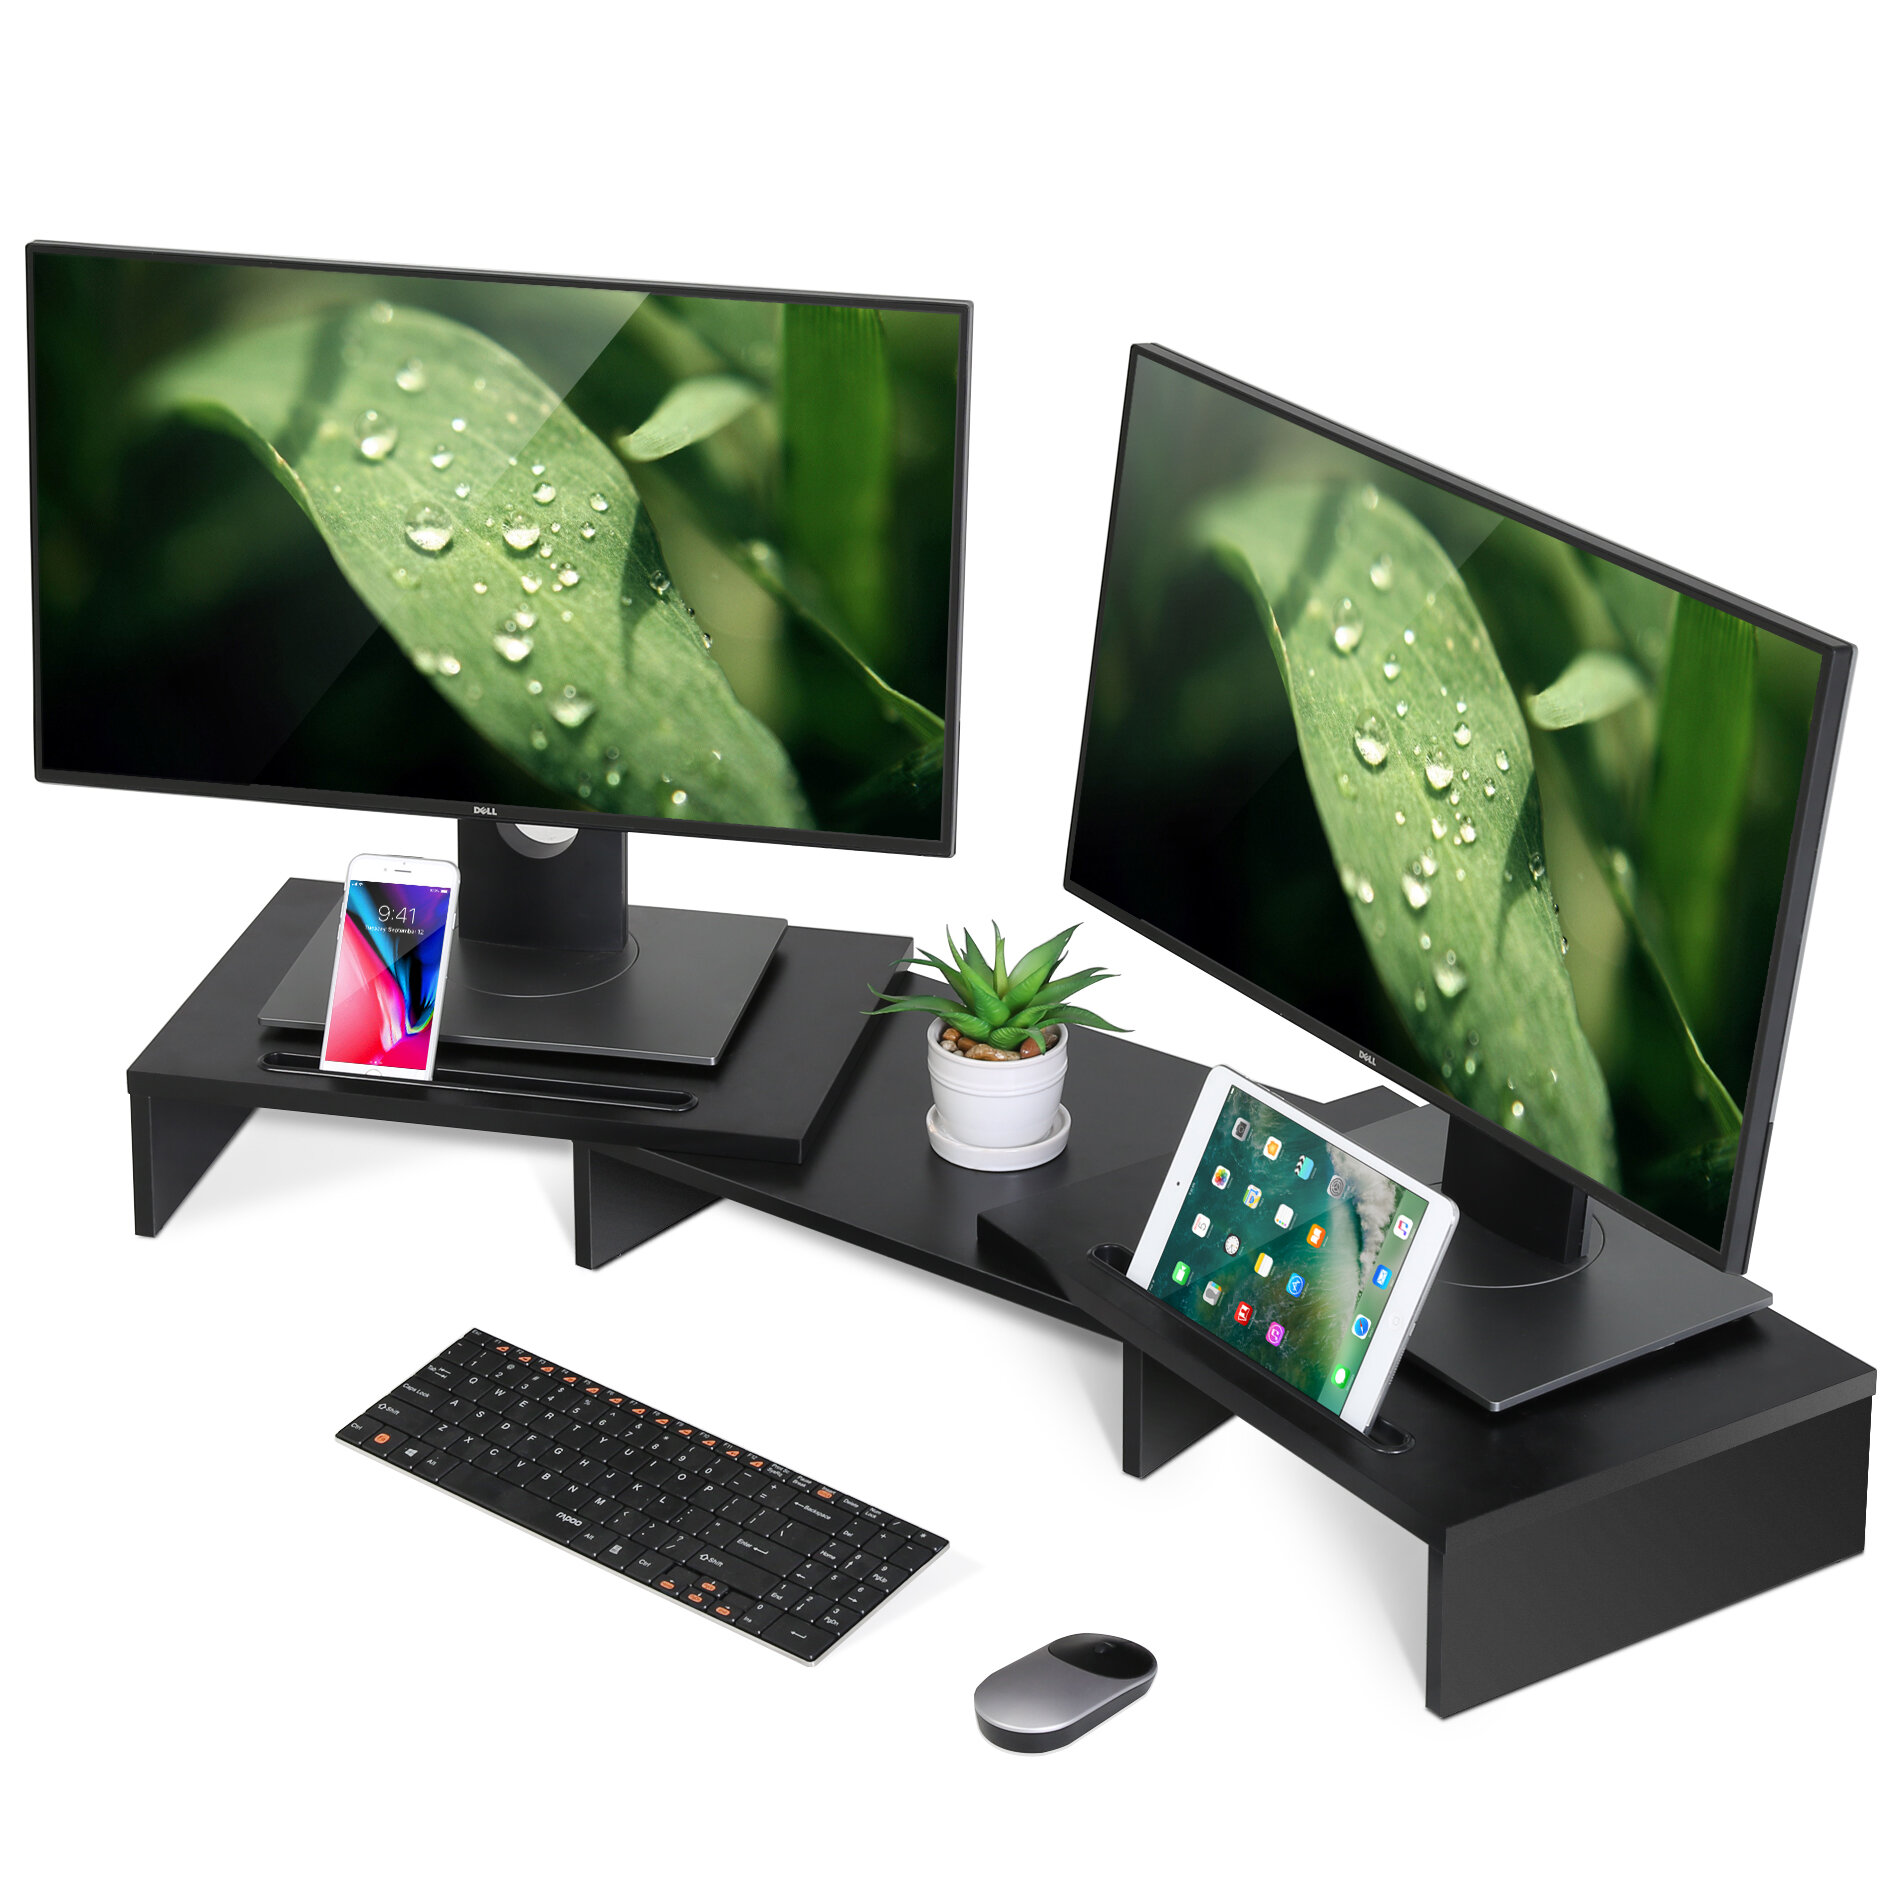 Cooling Ventilated Anti-Slip Ergonomic Portable Monitor Riser Aluminum Notebook Stand Suitable for Bedroom Office Living Room-Black Laptop Stand